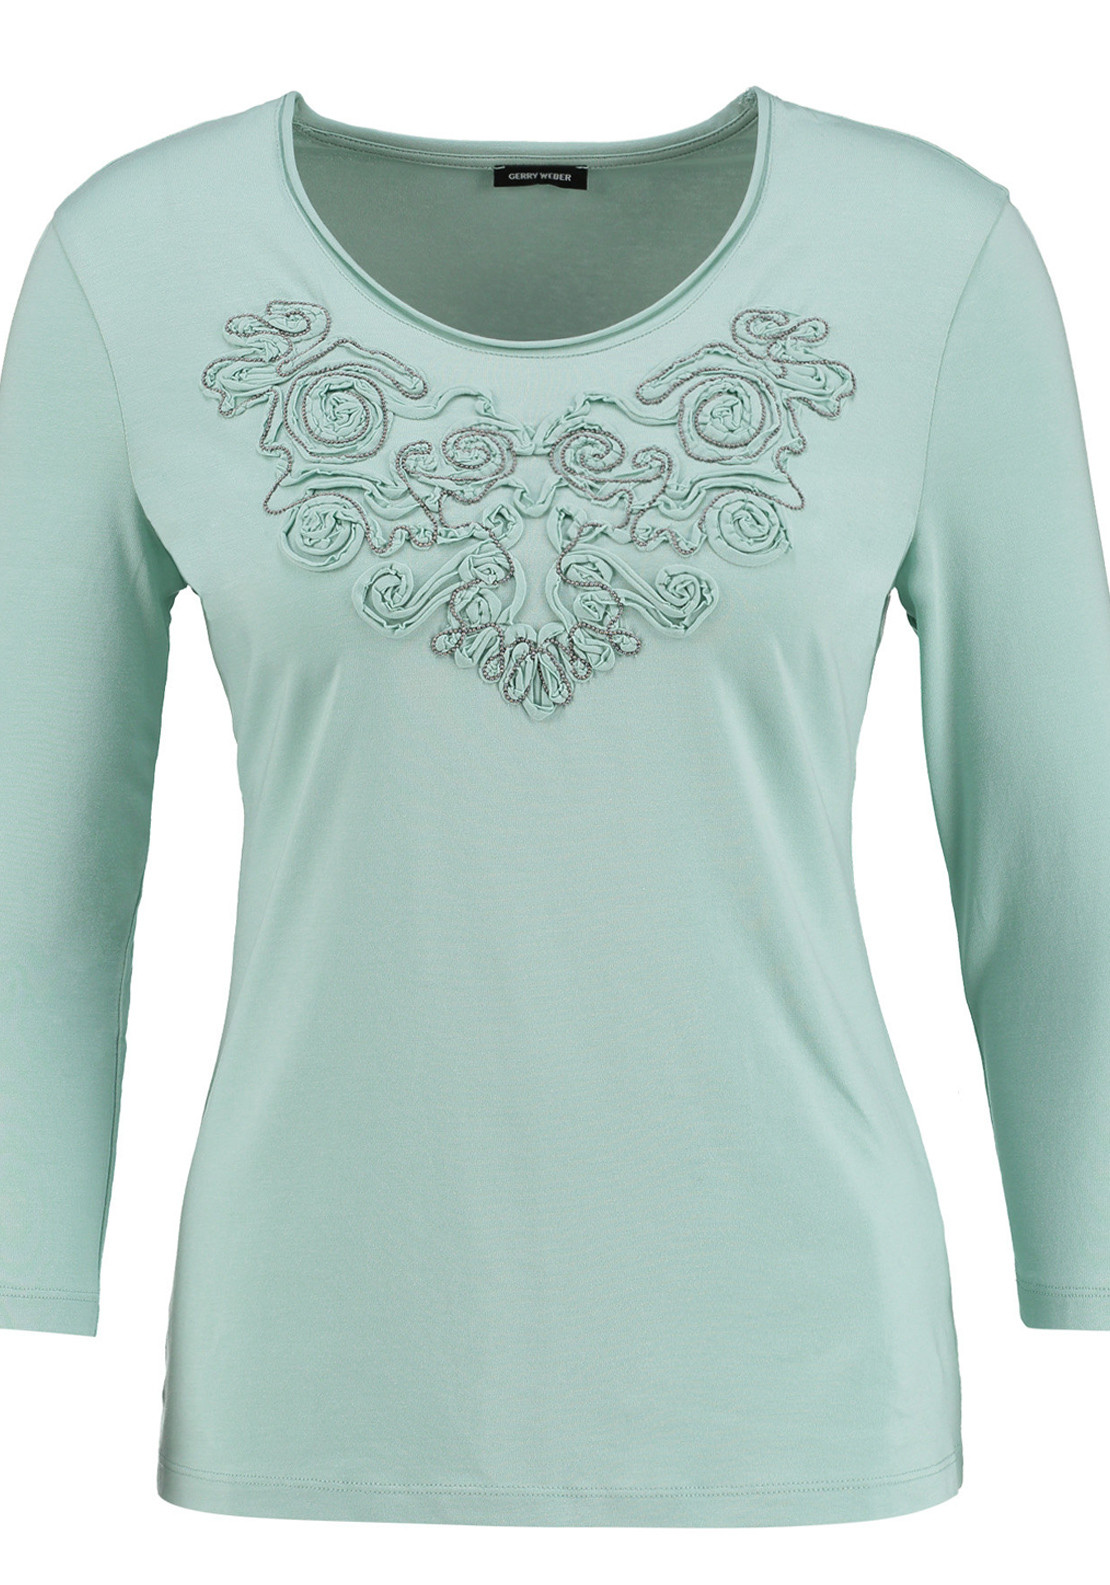 Gerry Weber Stud Embellished Ribbon Print Cropped Sleeve Top, Mint Green